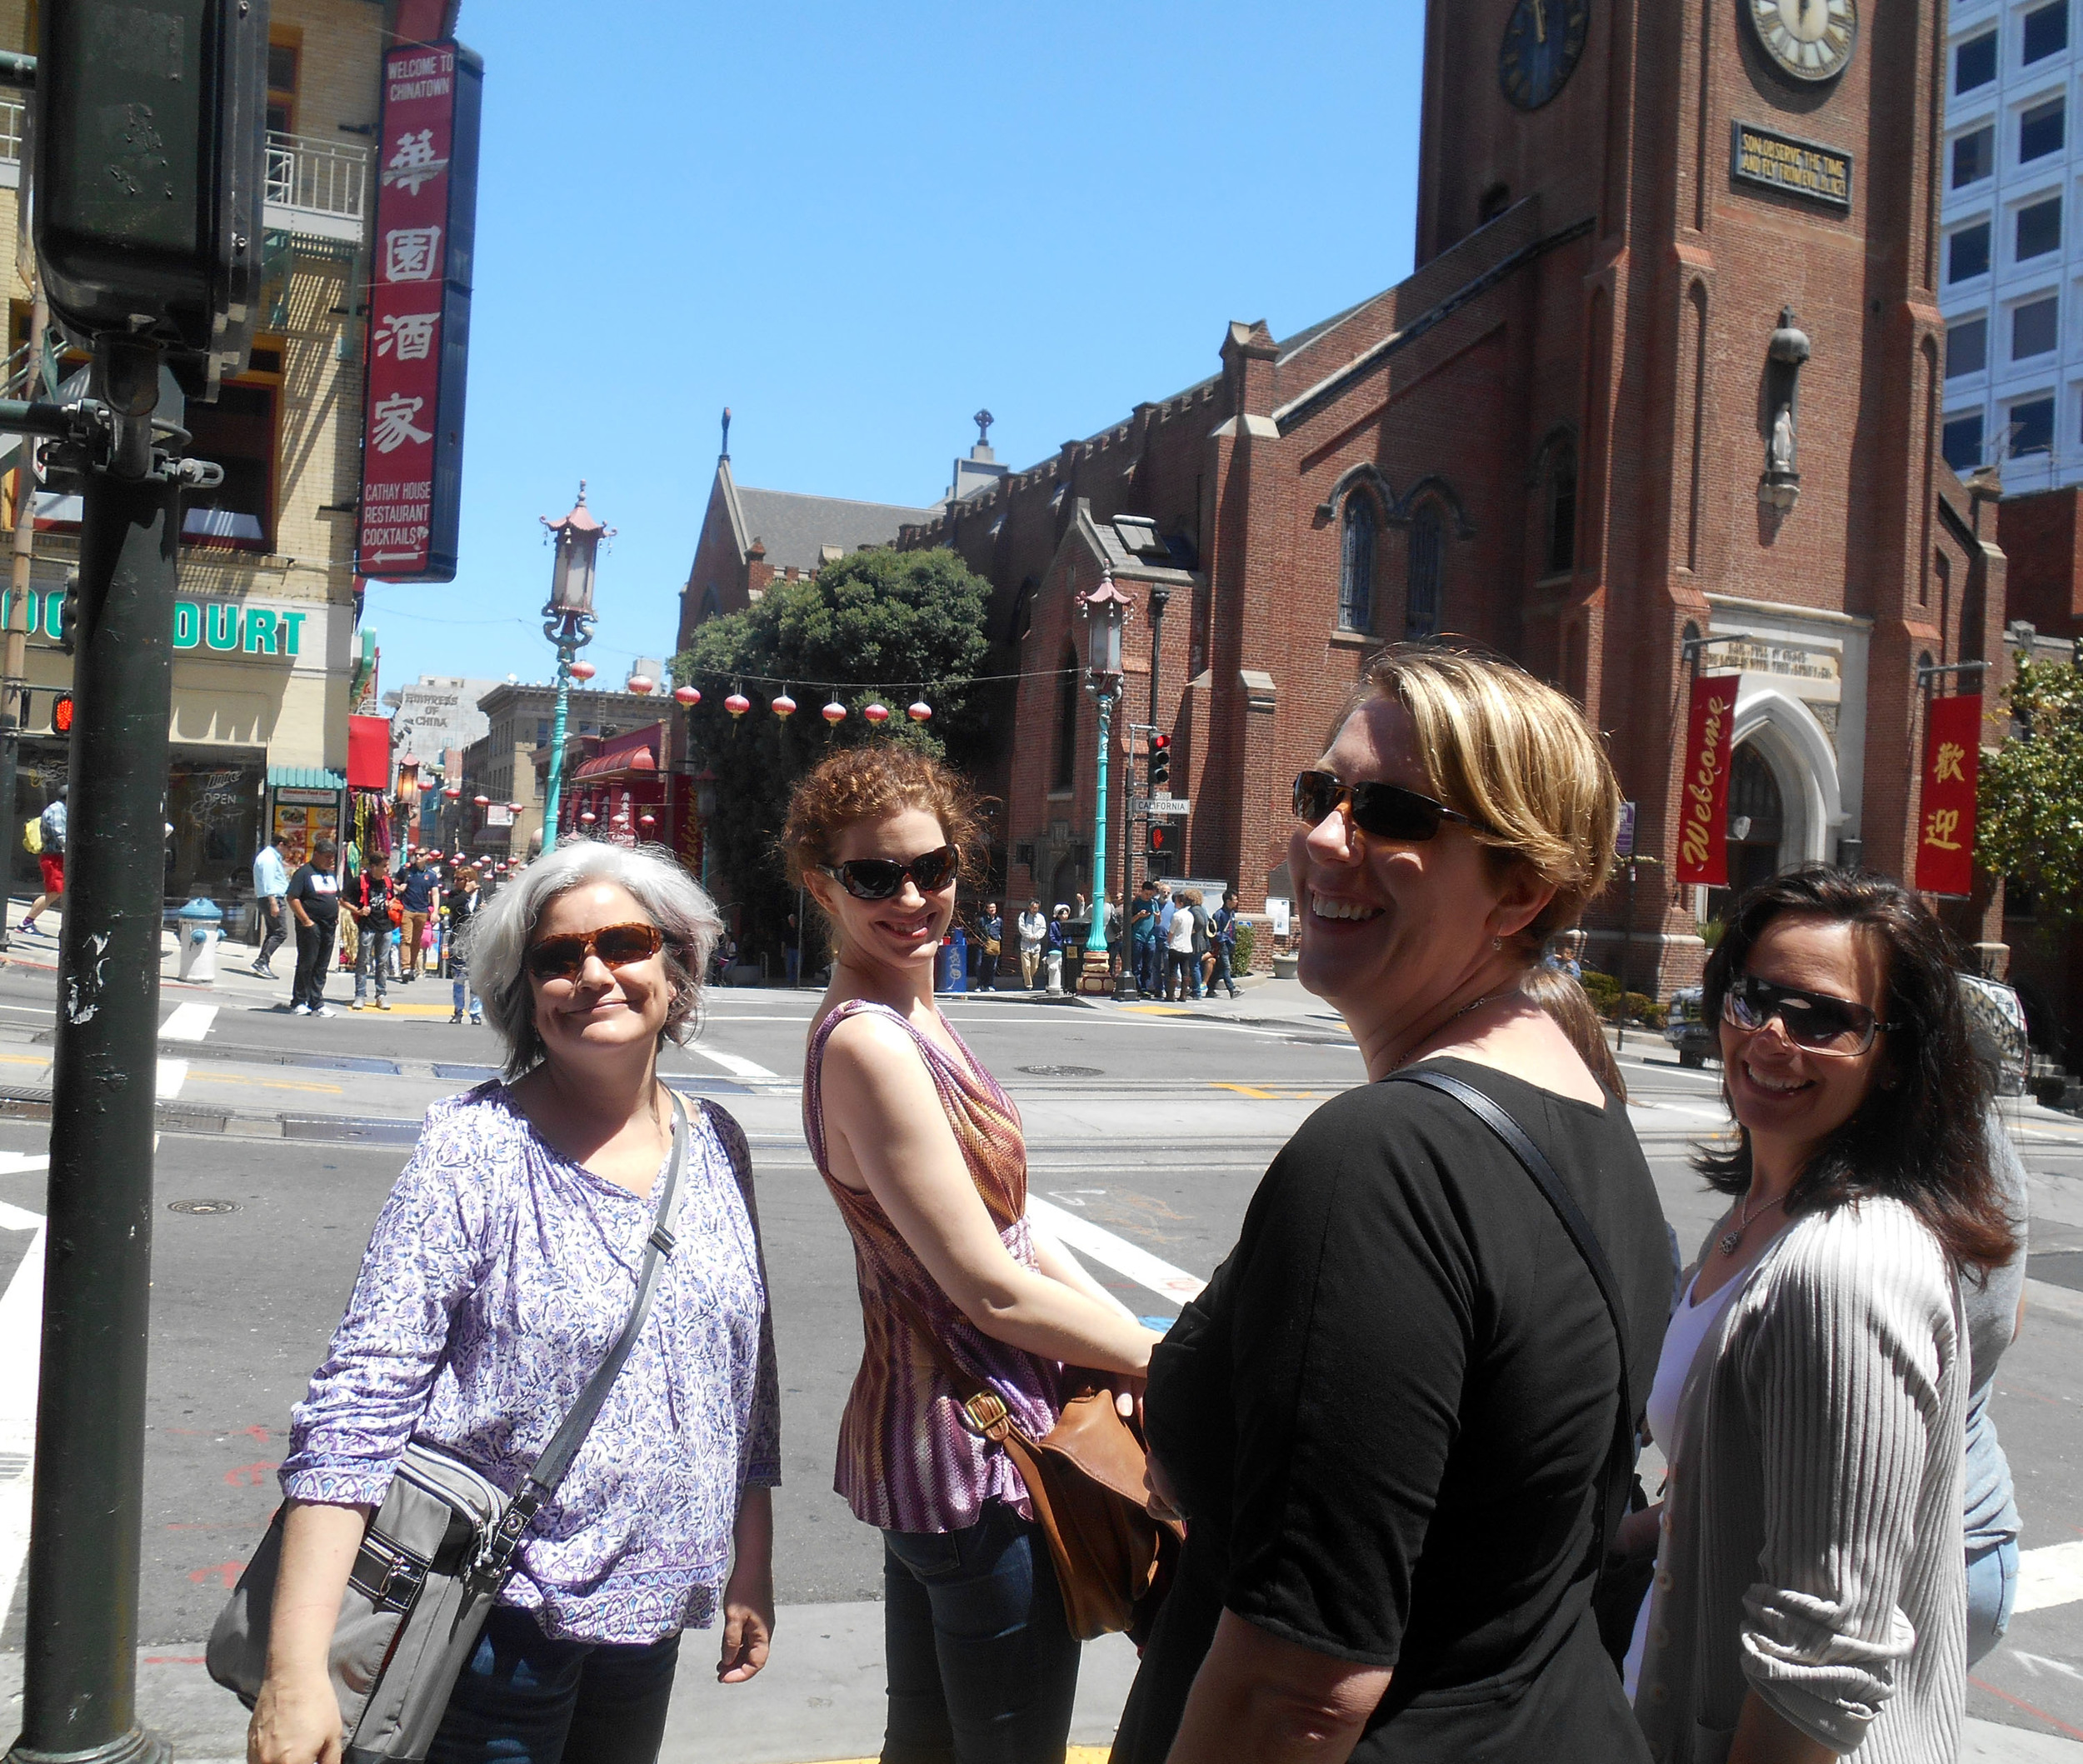 Julie Dillard, Sarah McGuire, Kristen Crowley Held and Amy Allgeyer chilling in Chinatown.